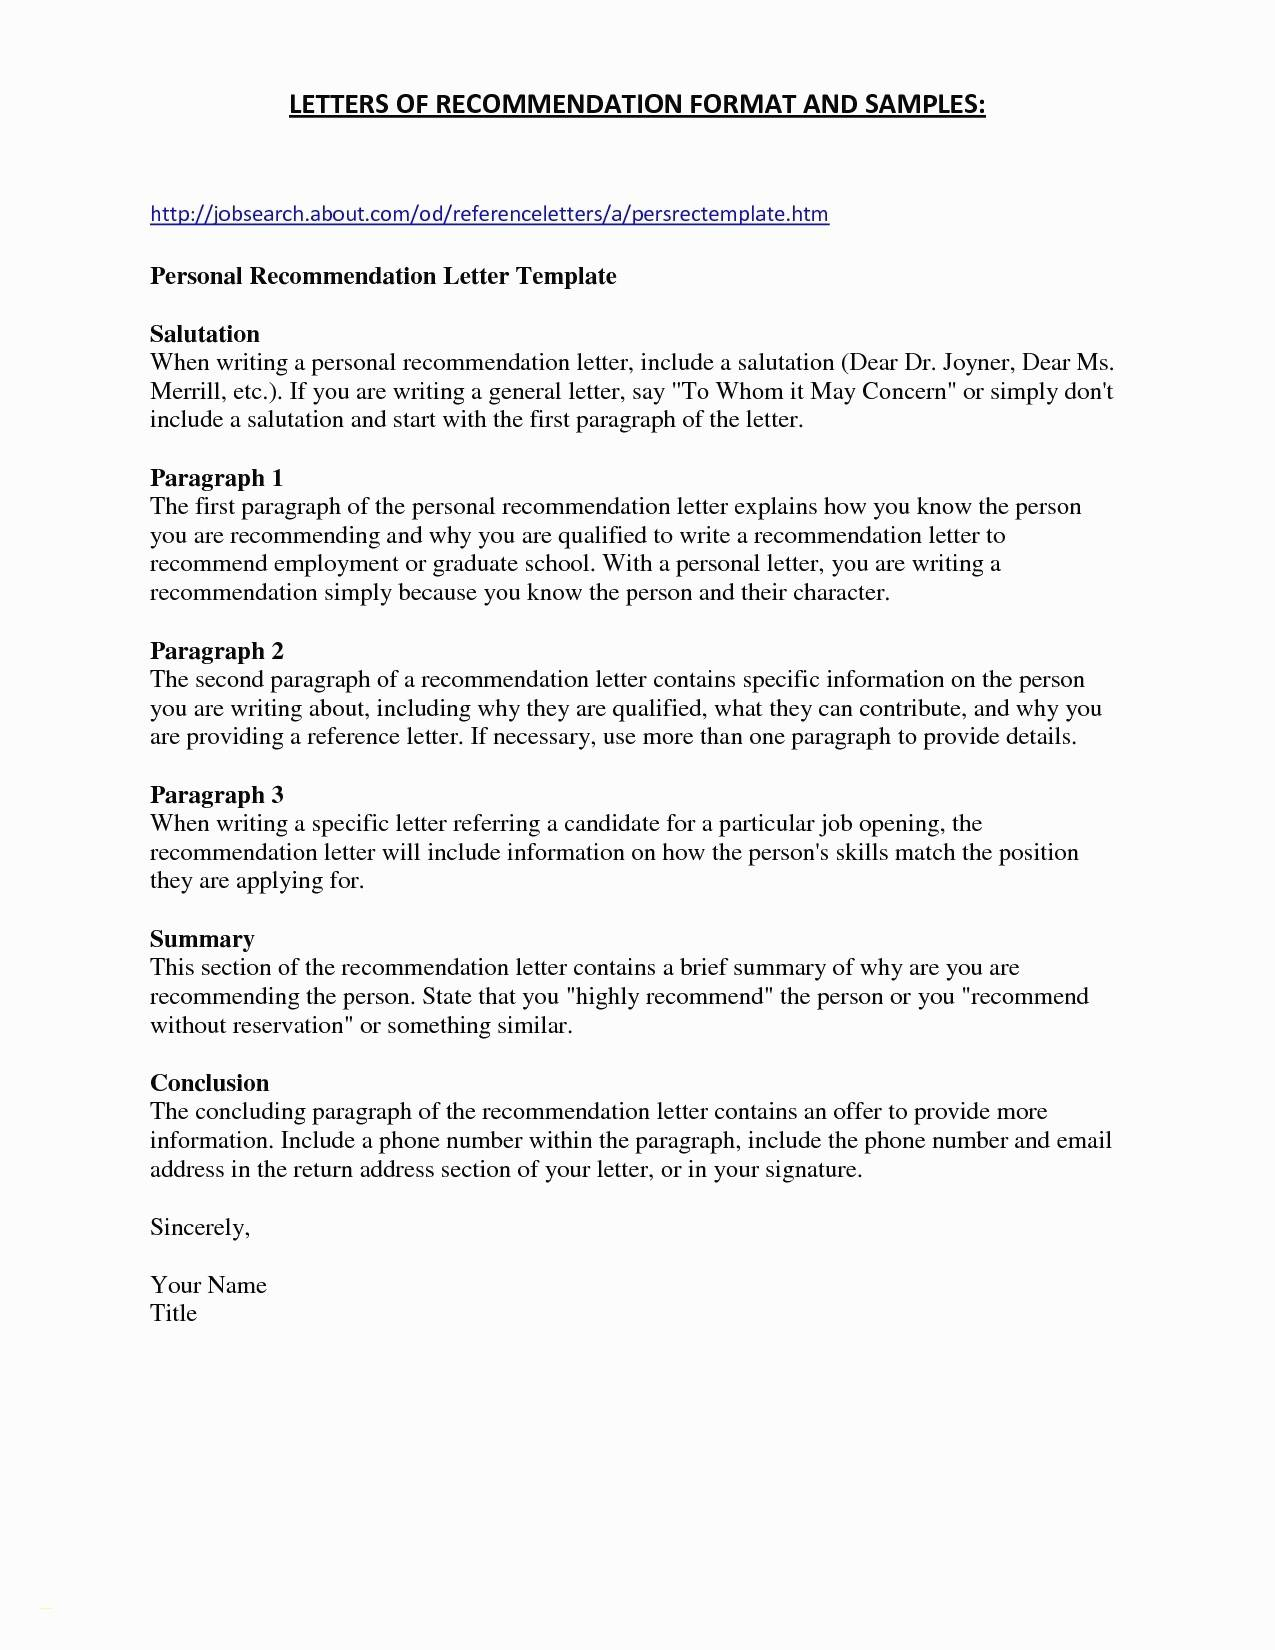 Free Letter Of Recommendation Template - Writing A Re Mendation Letter for A Job